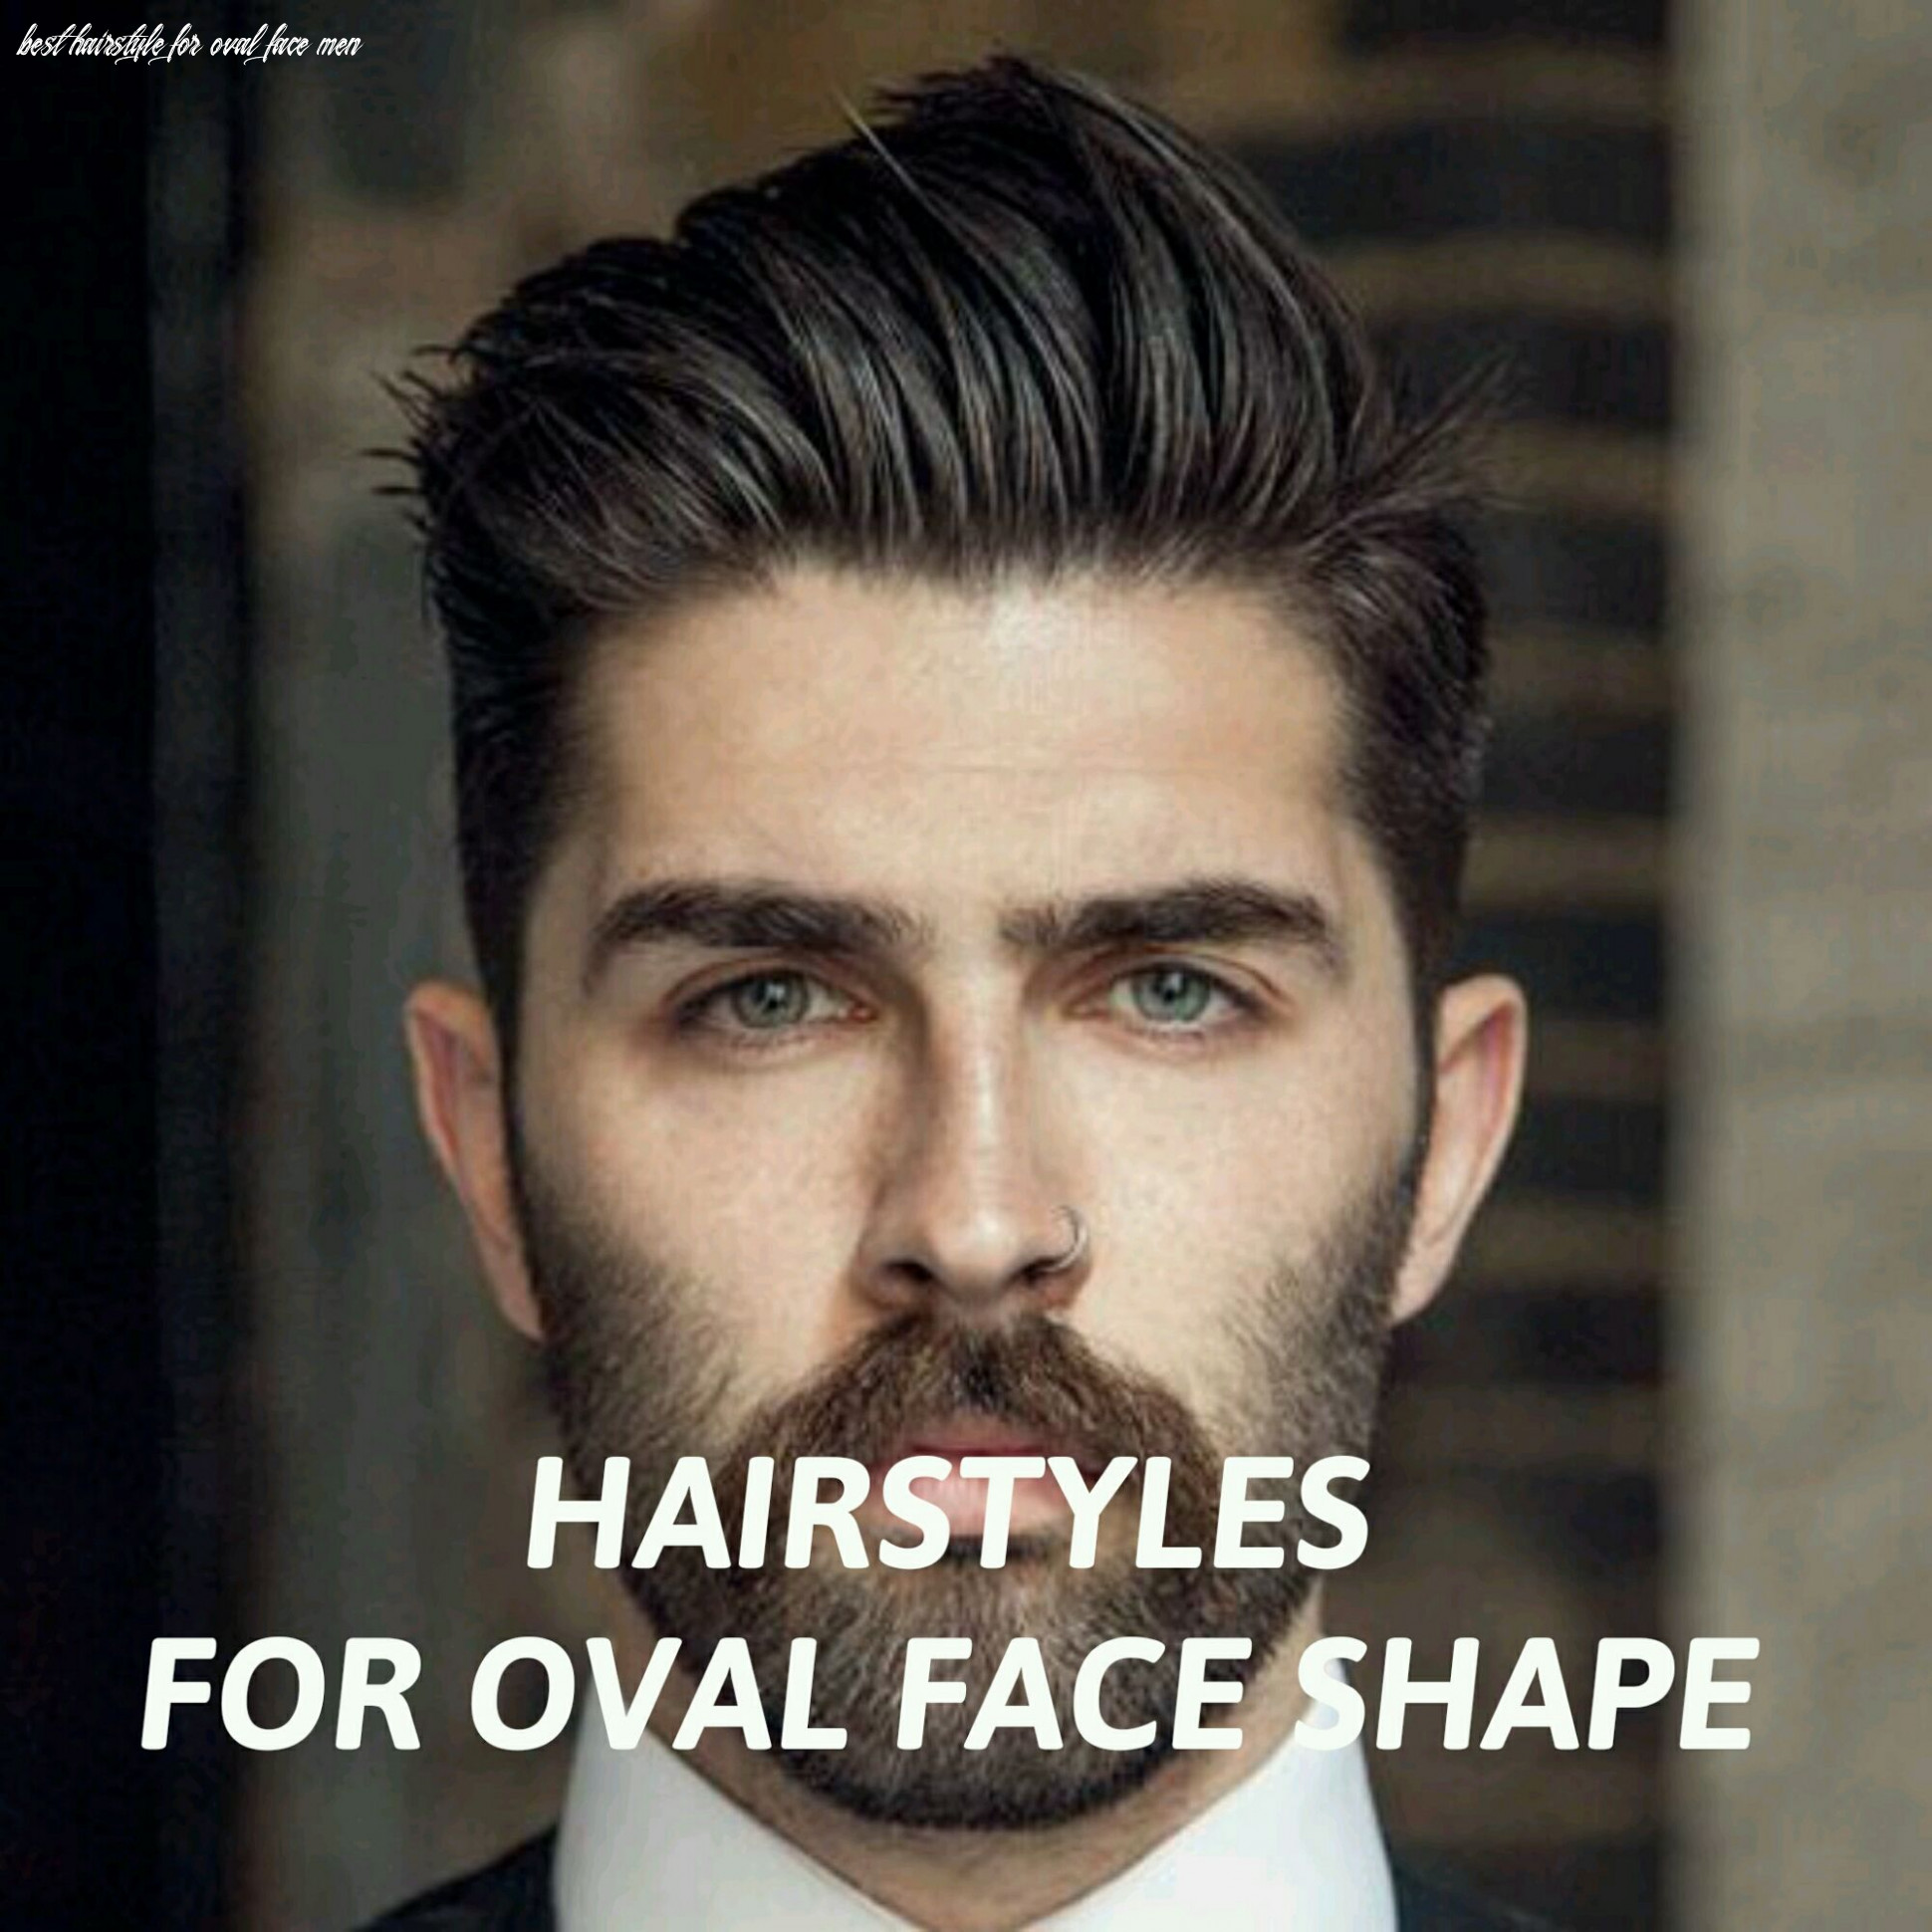 Men's Hairstyles For Oval Face Shape | Oval face hairstyles, Oval ...